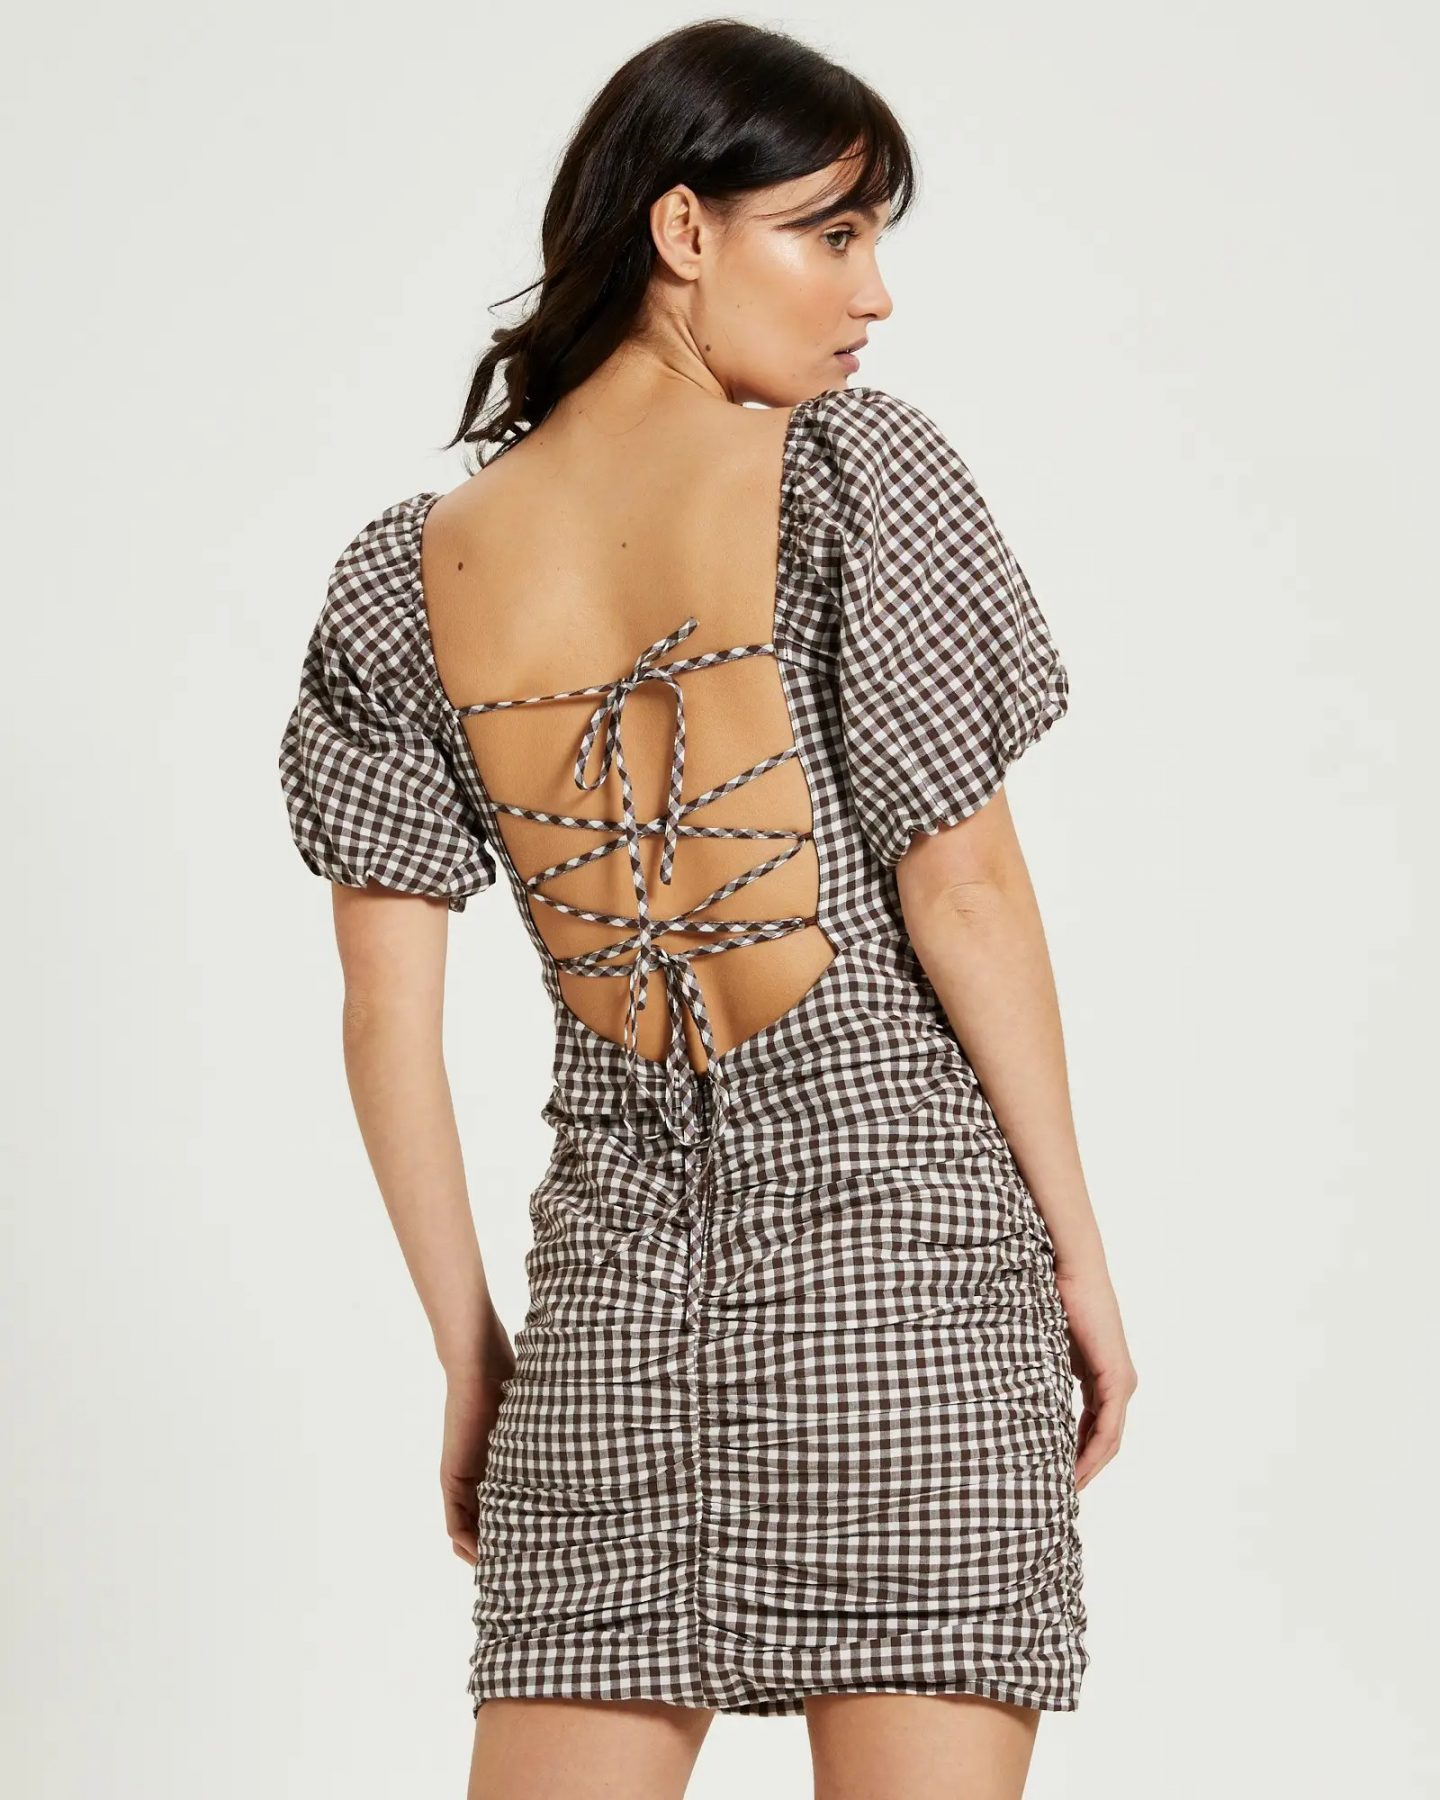 Gingham puff sleeve dress with criss cross back